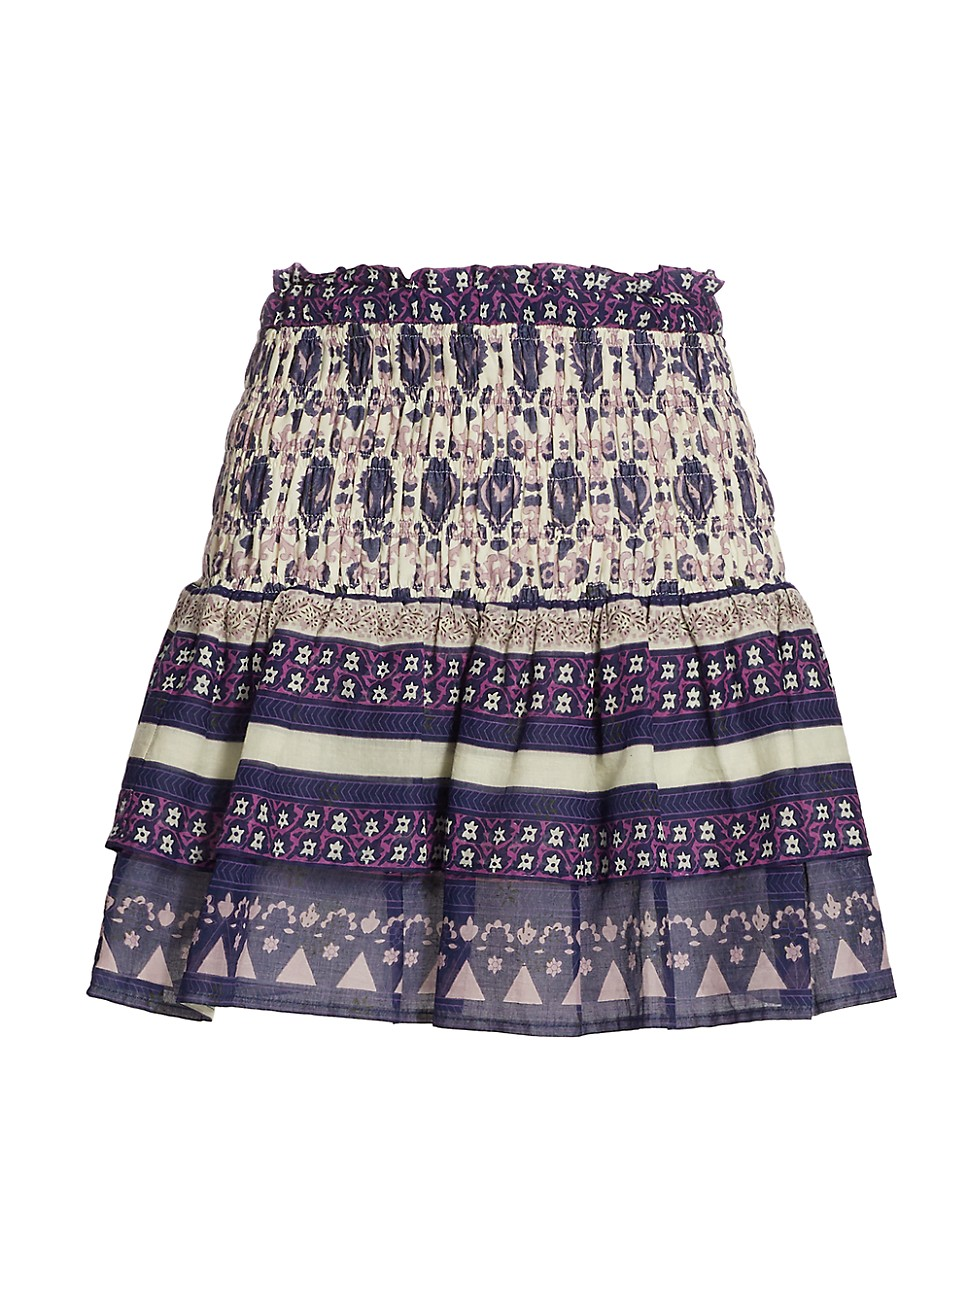 Sea WOMEN'S BRIGITTE BORDER SKIRT